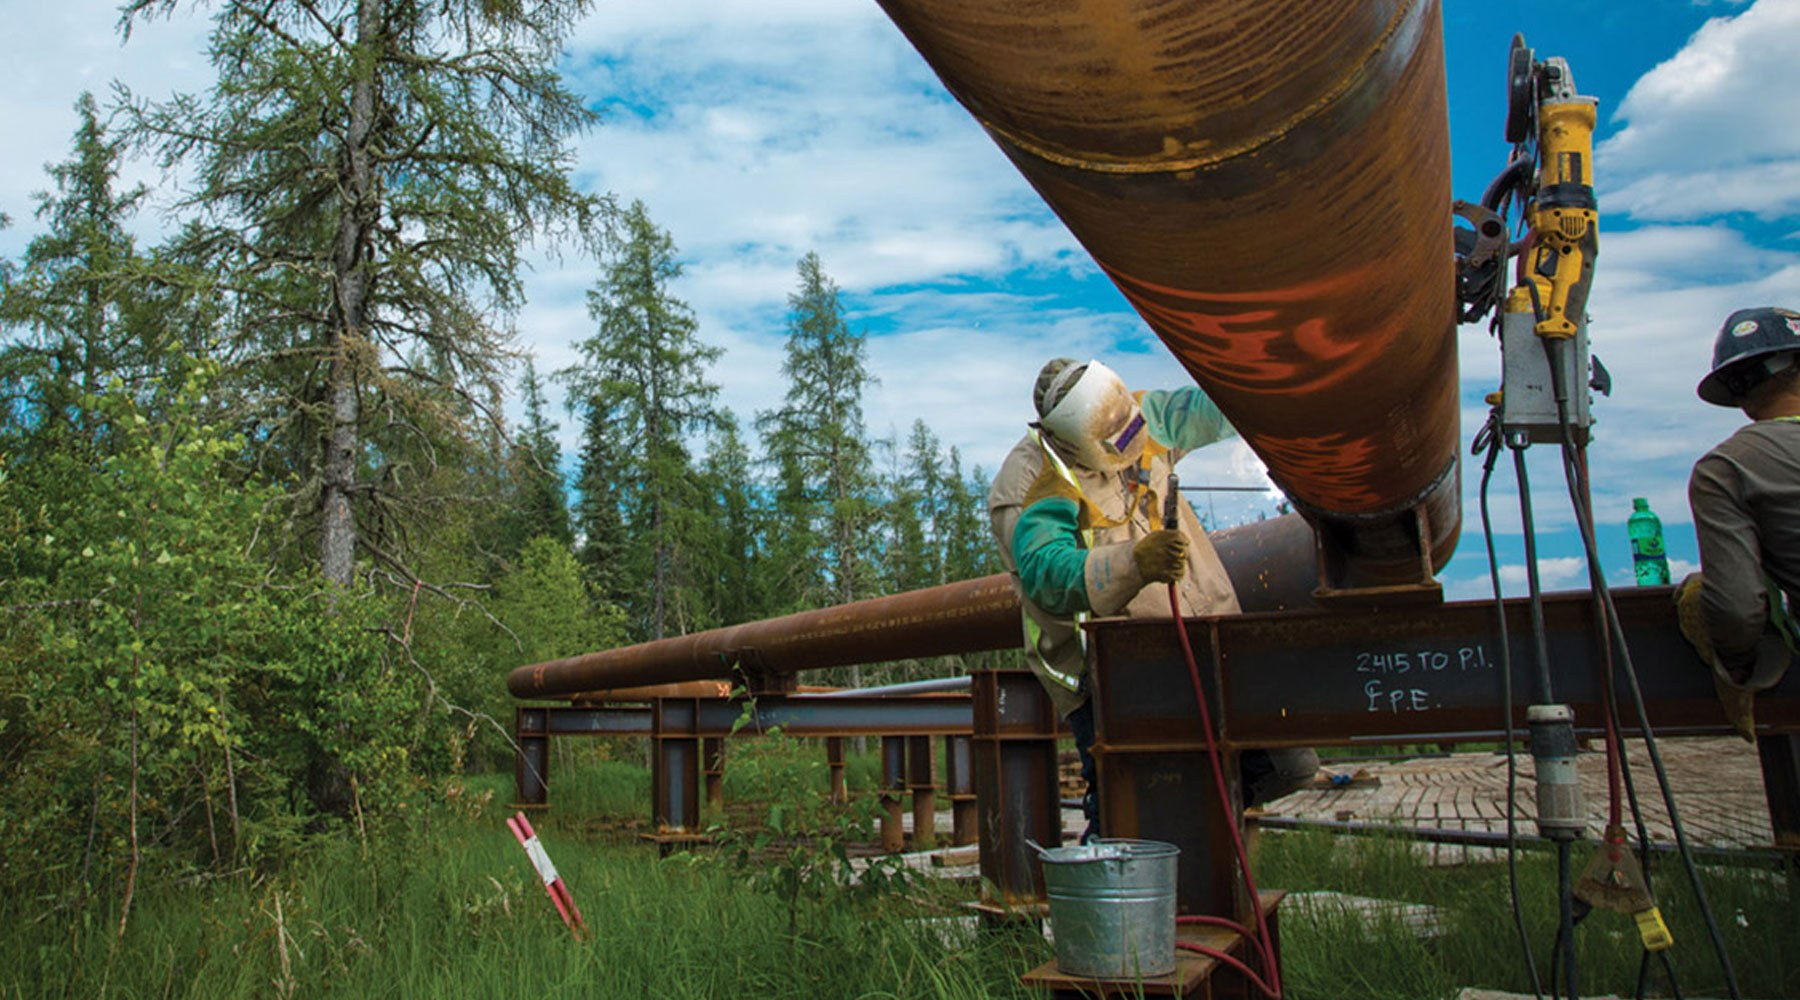 A worker carrying out maintenance on a pipeline in a forest landscape